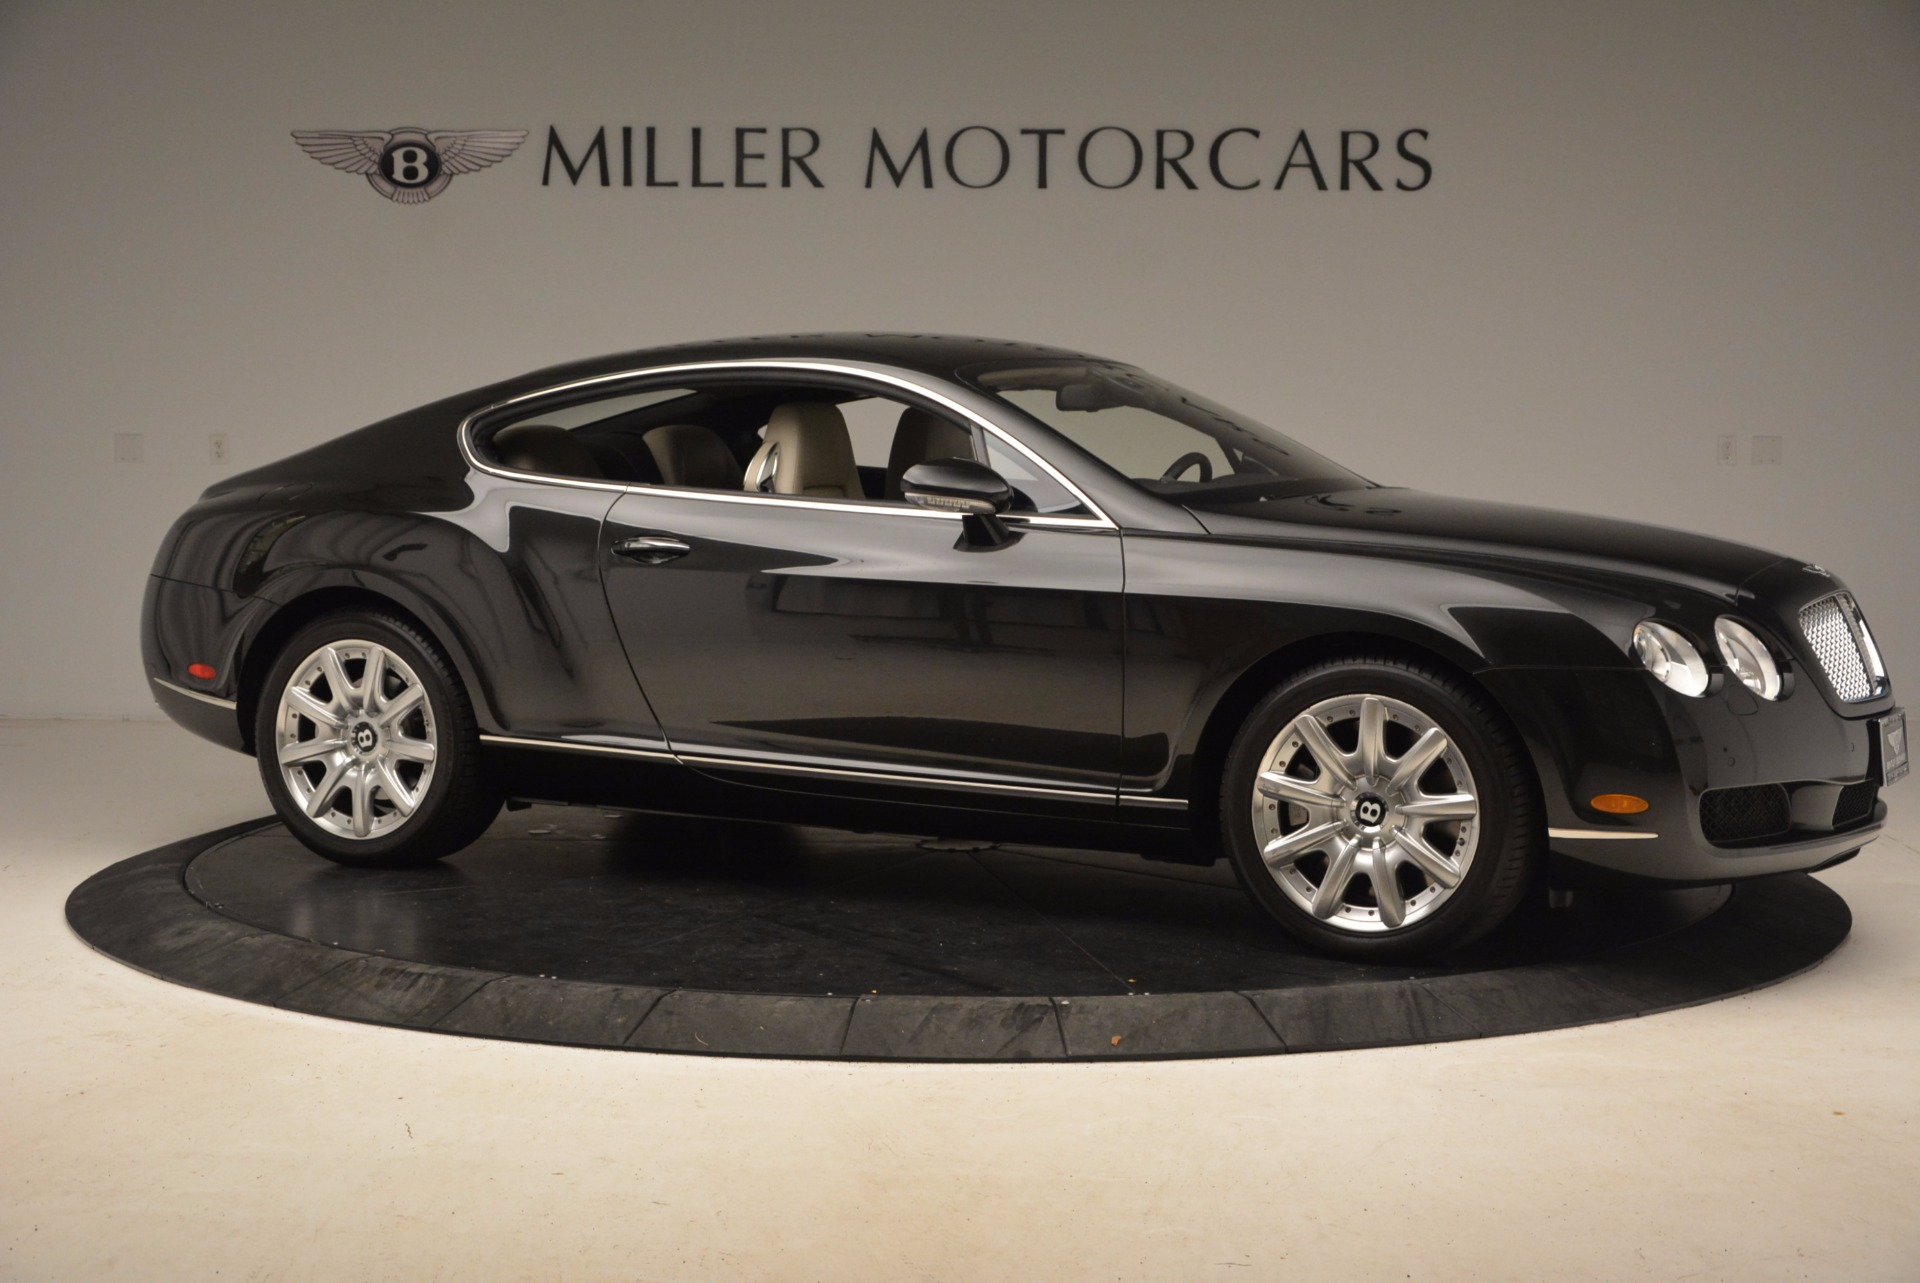 Used 2005 Bentley Continental GT W12 For Sale In Greenwich, CT. Alfa Romeo of Greenwich, 7290 1677_p10